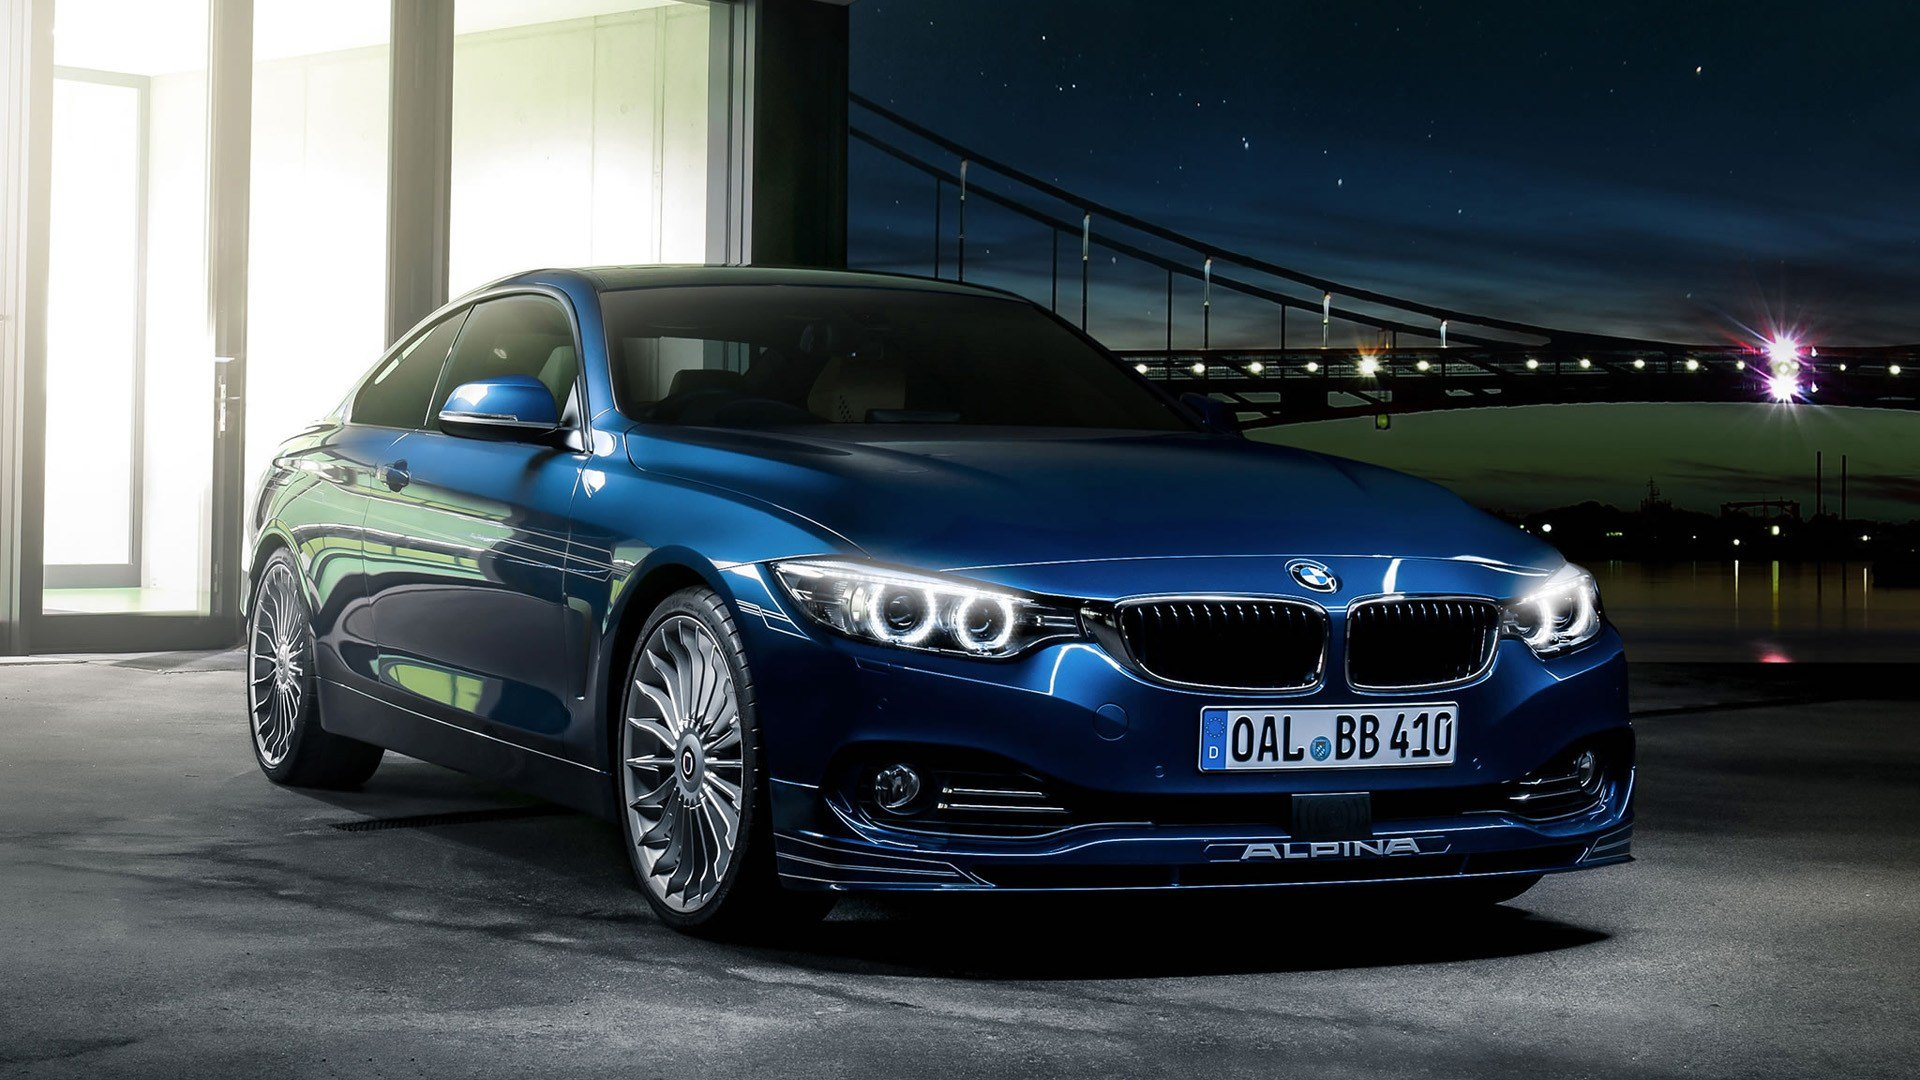 Latest 2014 Bmw Alpina B4 Biturbo Wallpapers Hd Images Wsupercars Free Download